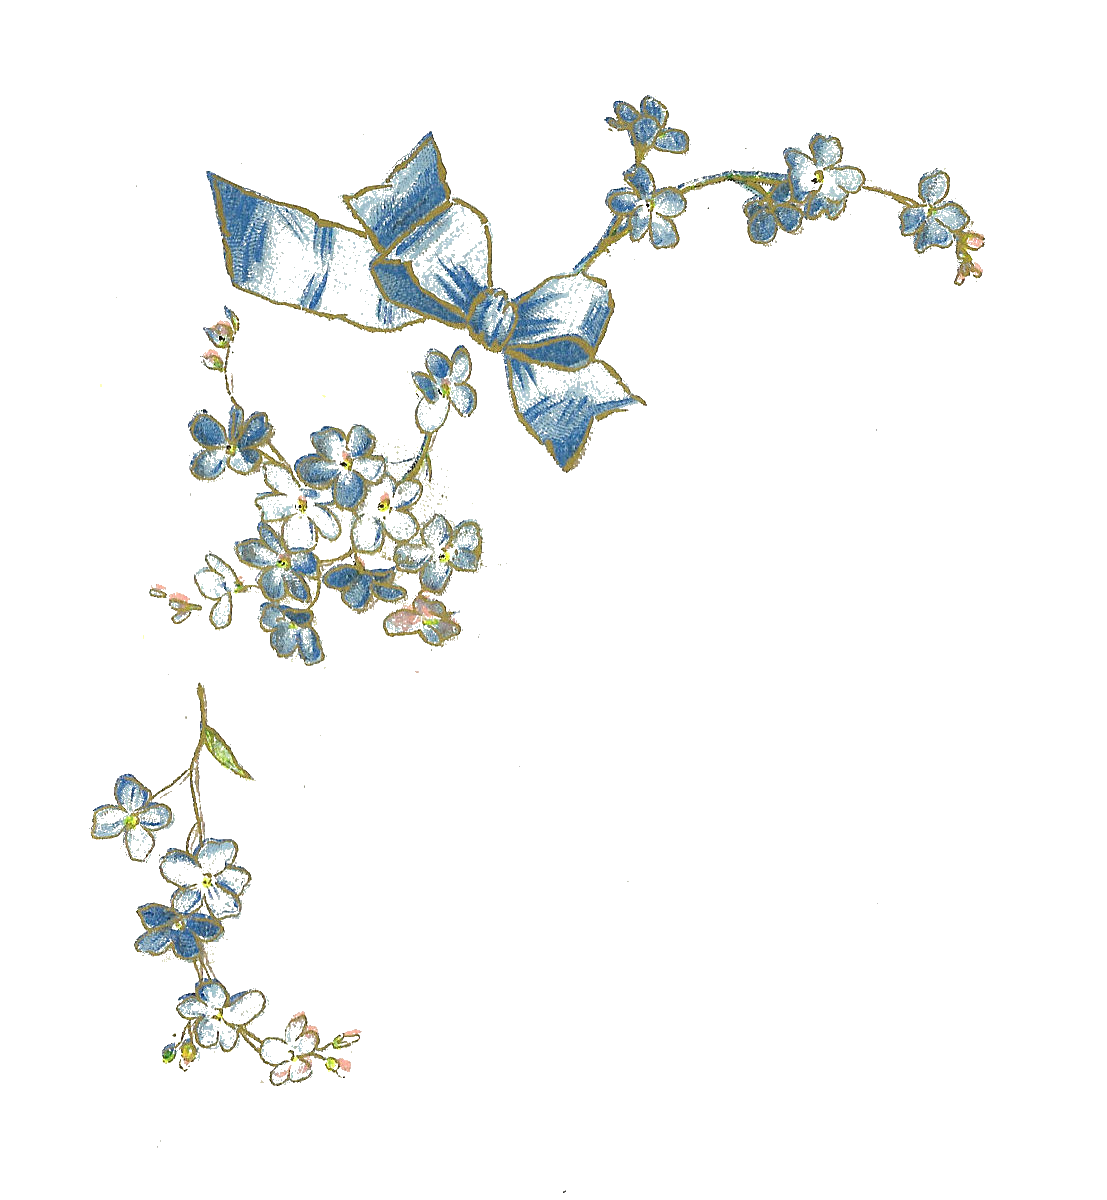 Free Flower Graphic: Vintage ForgetMeNot Flower Illustration with